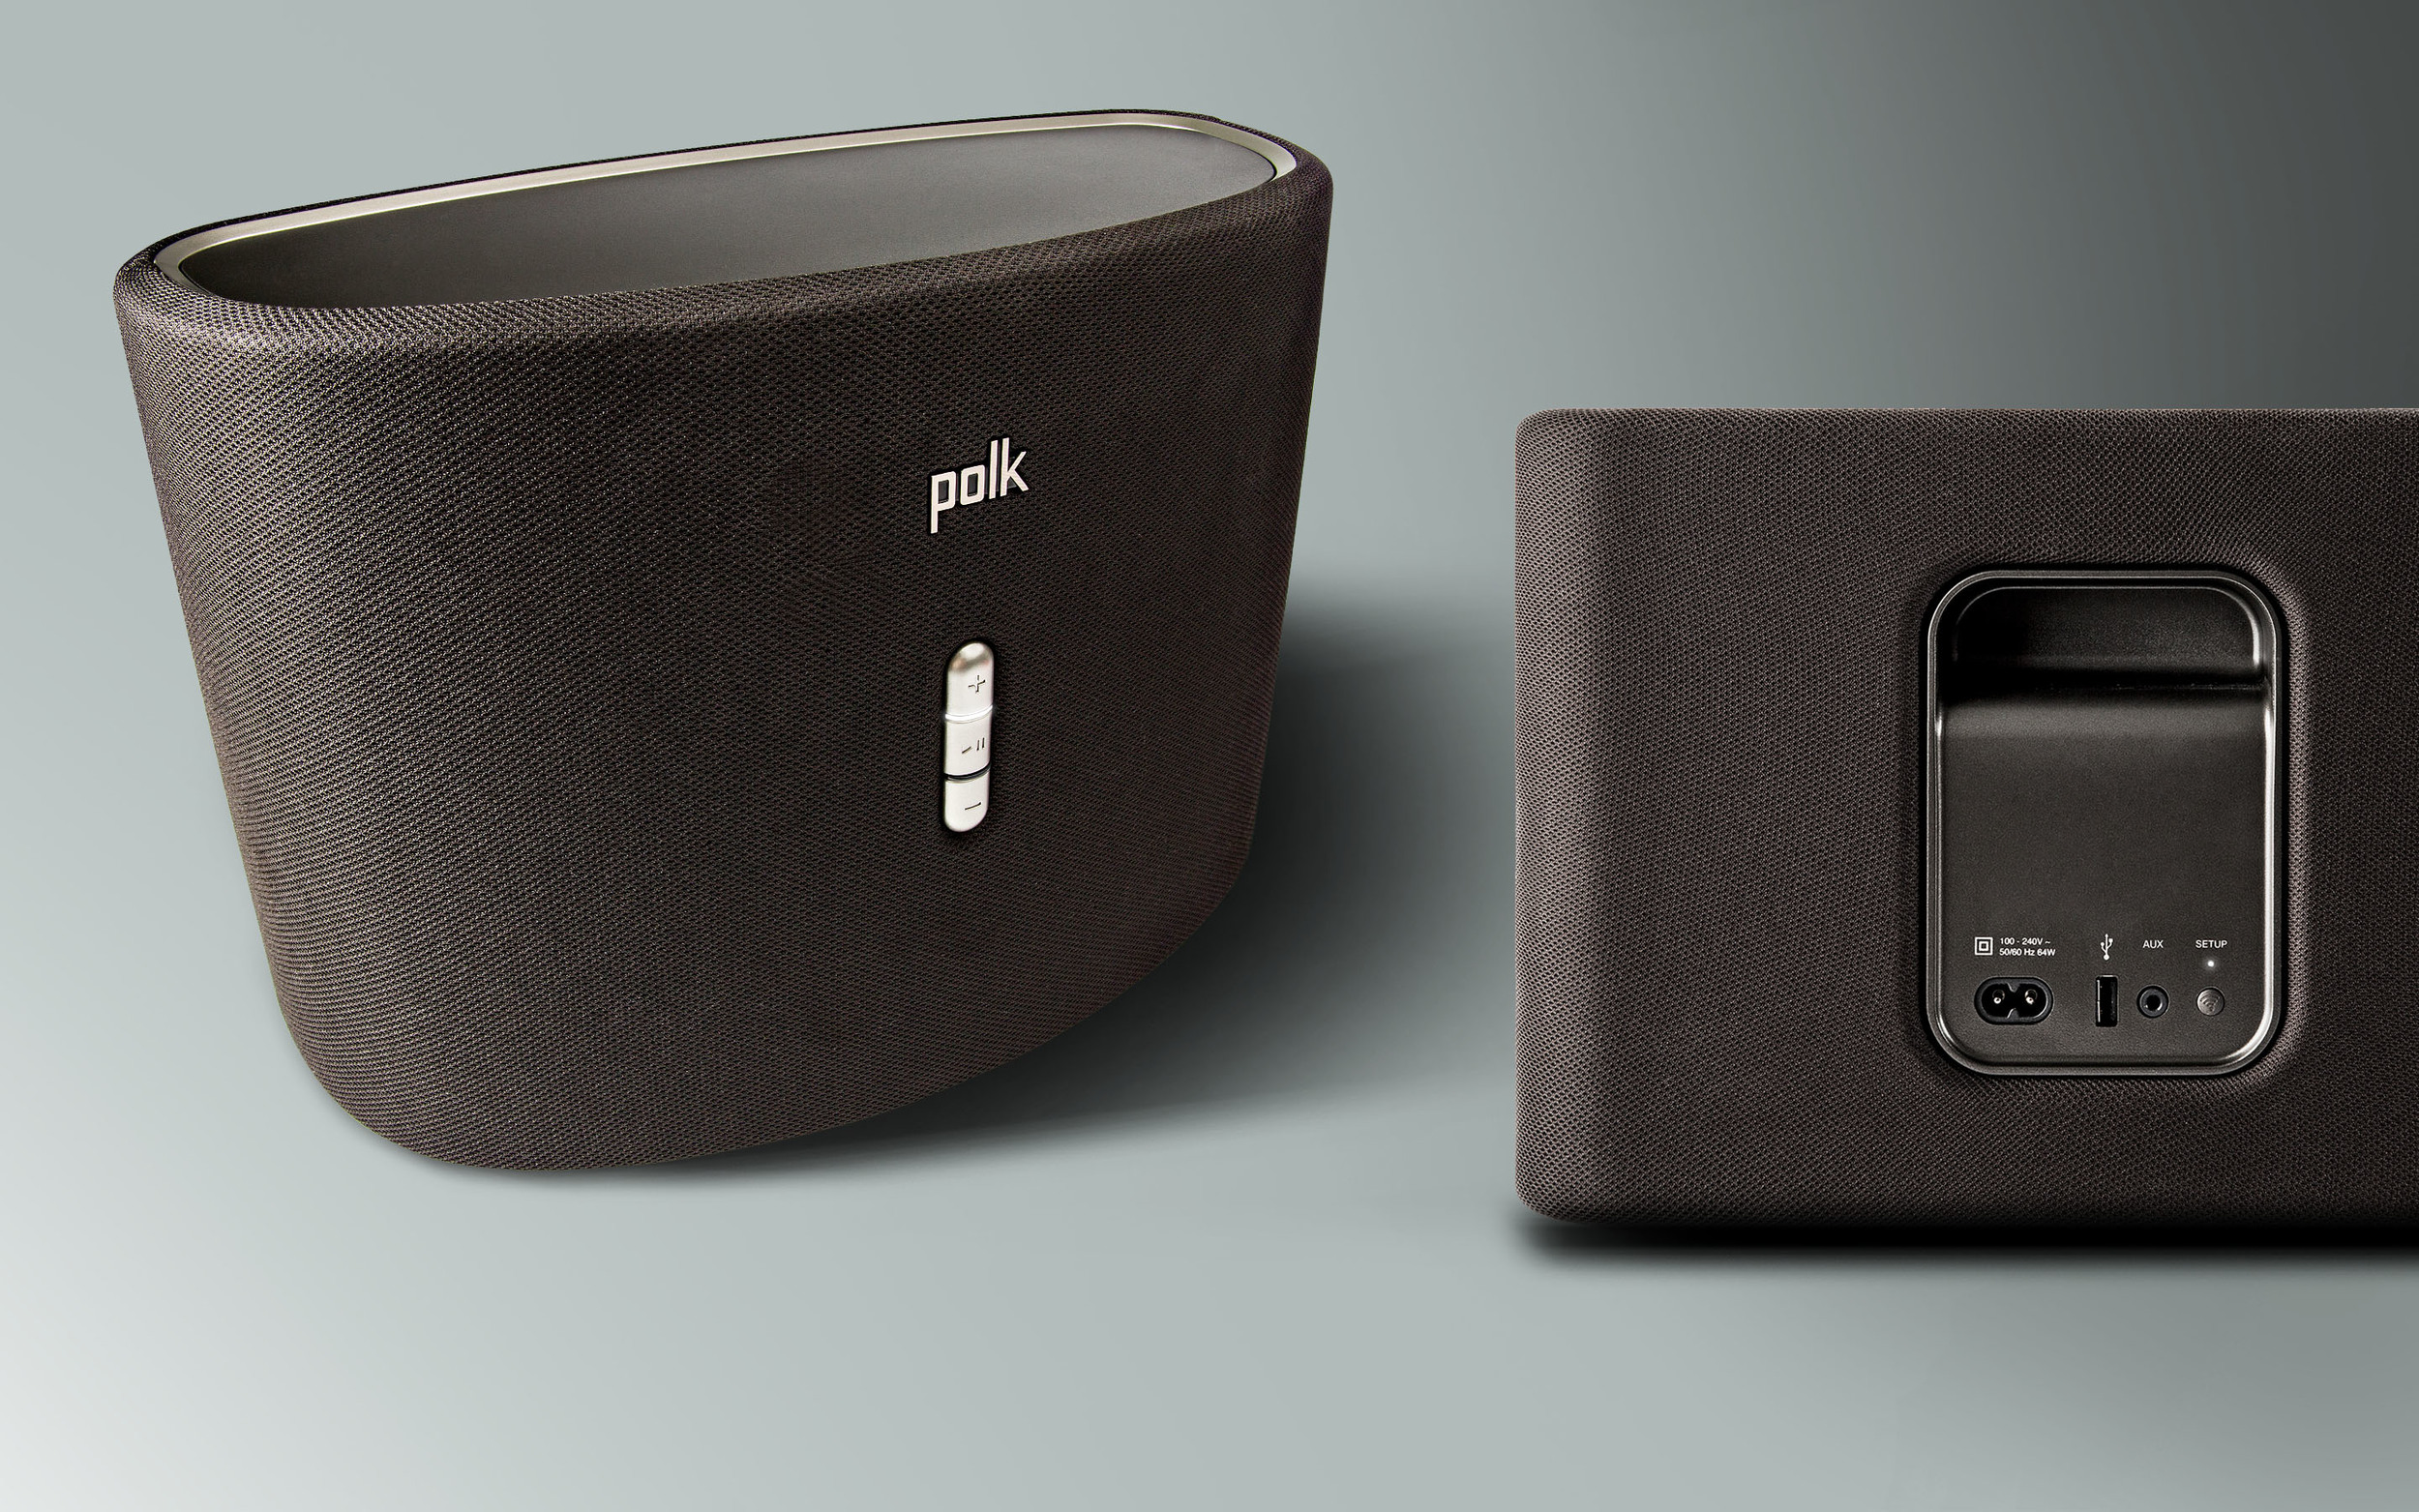 The Polk Omni S6 uses simple color association to communicate source behavior (white for wi-fi, amber for aux). It shares a minimal and approachable user interface, warm material palette, and completes the ecclectic Omni family